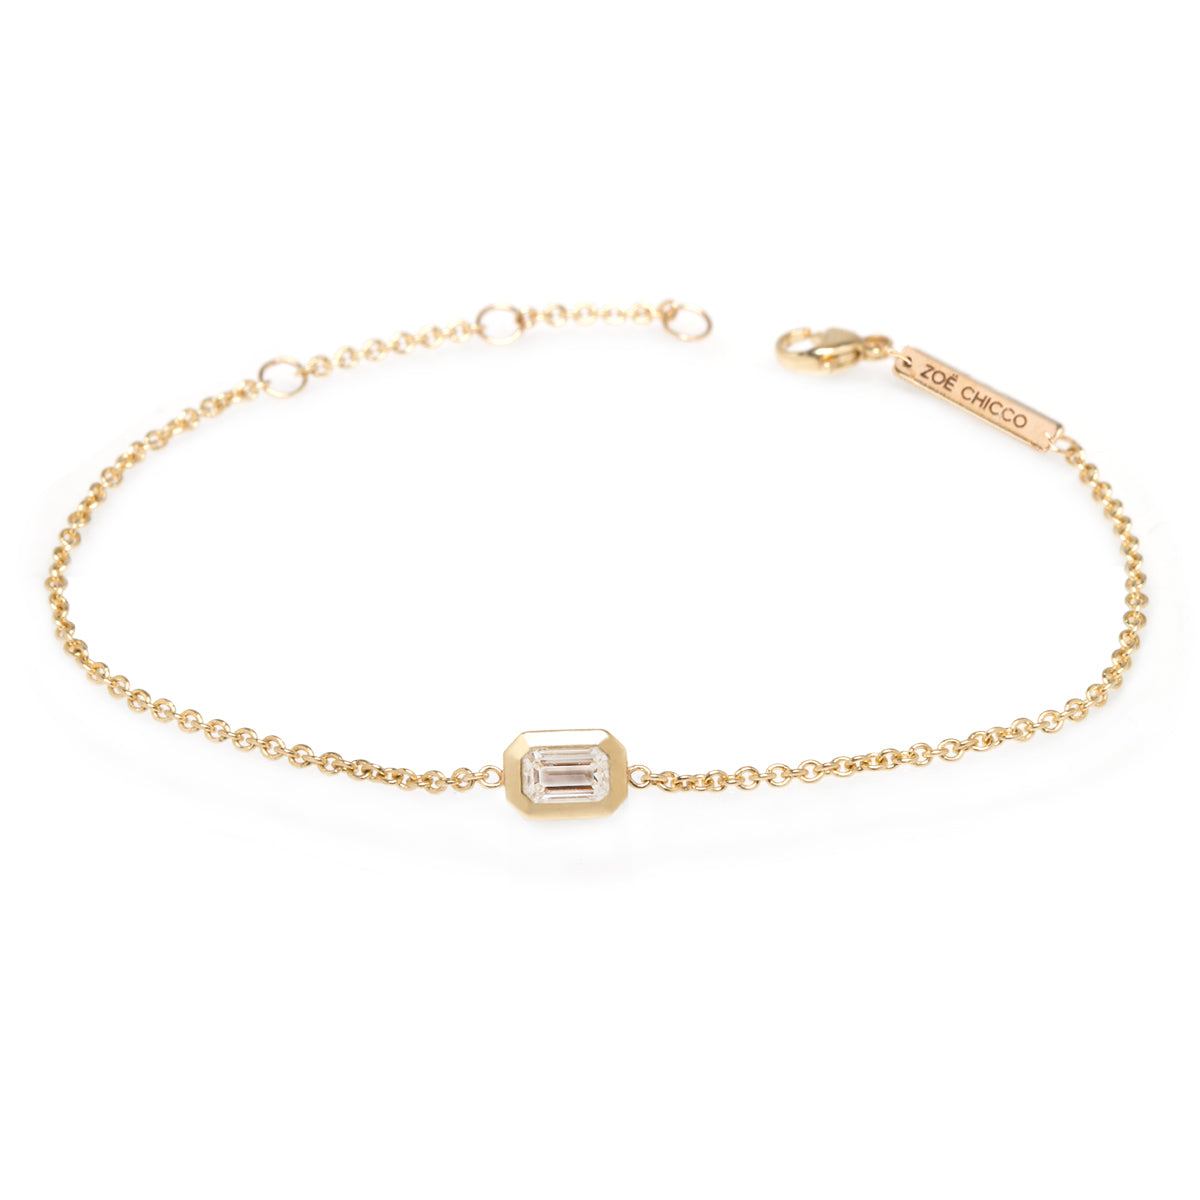 14k emerald cut diamond bracelet